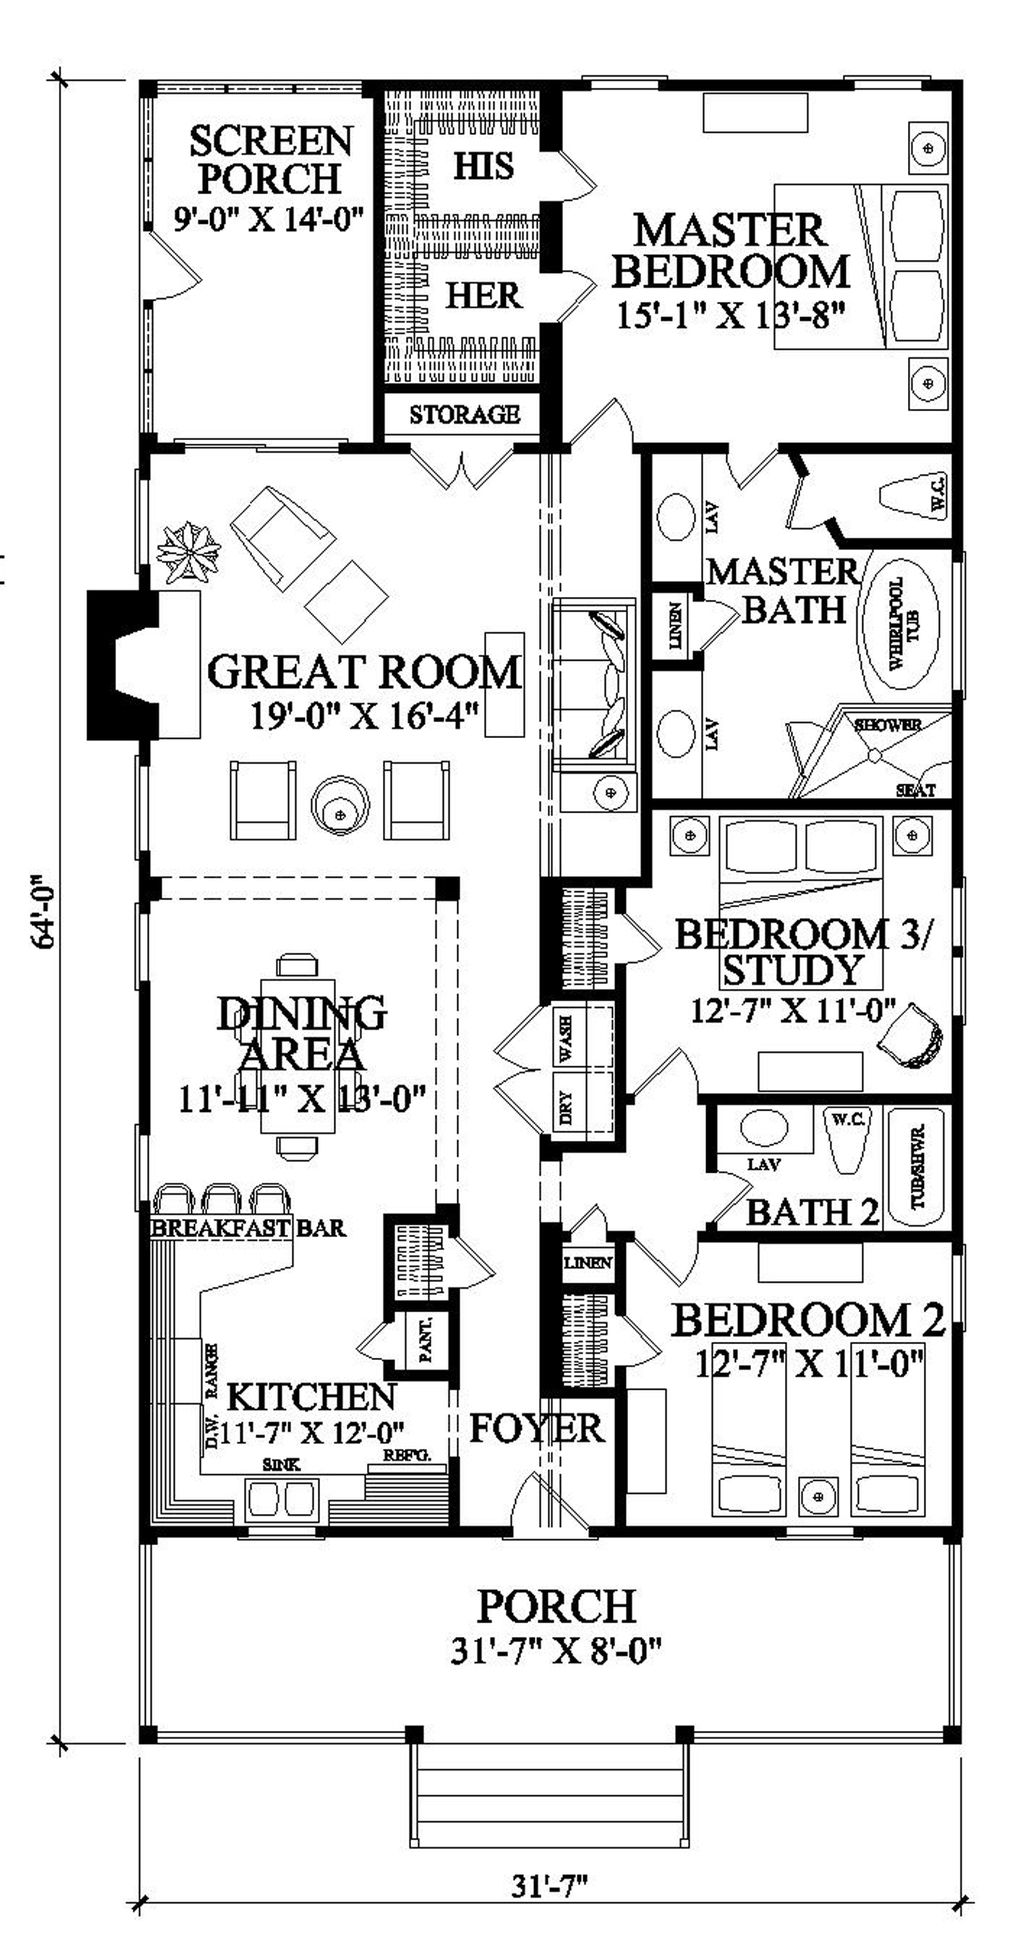 Southern style house plan 3 beds 2 baths 1643 sq ft plan for Southern colonial floor plans